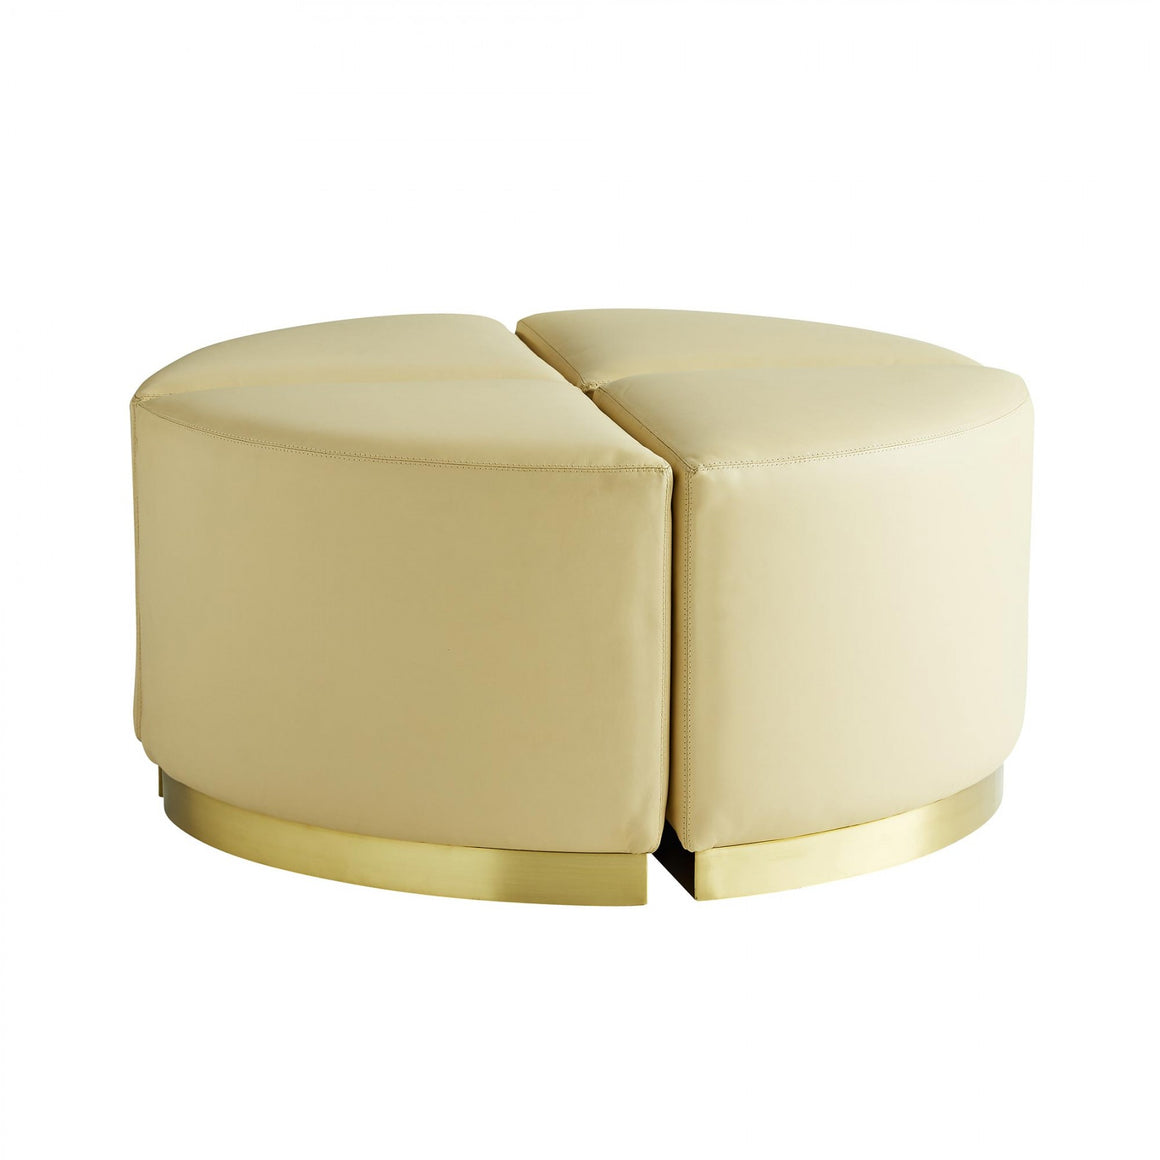 Arteriors Ecru Ottomans, Set of 4